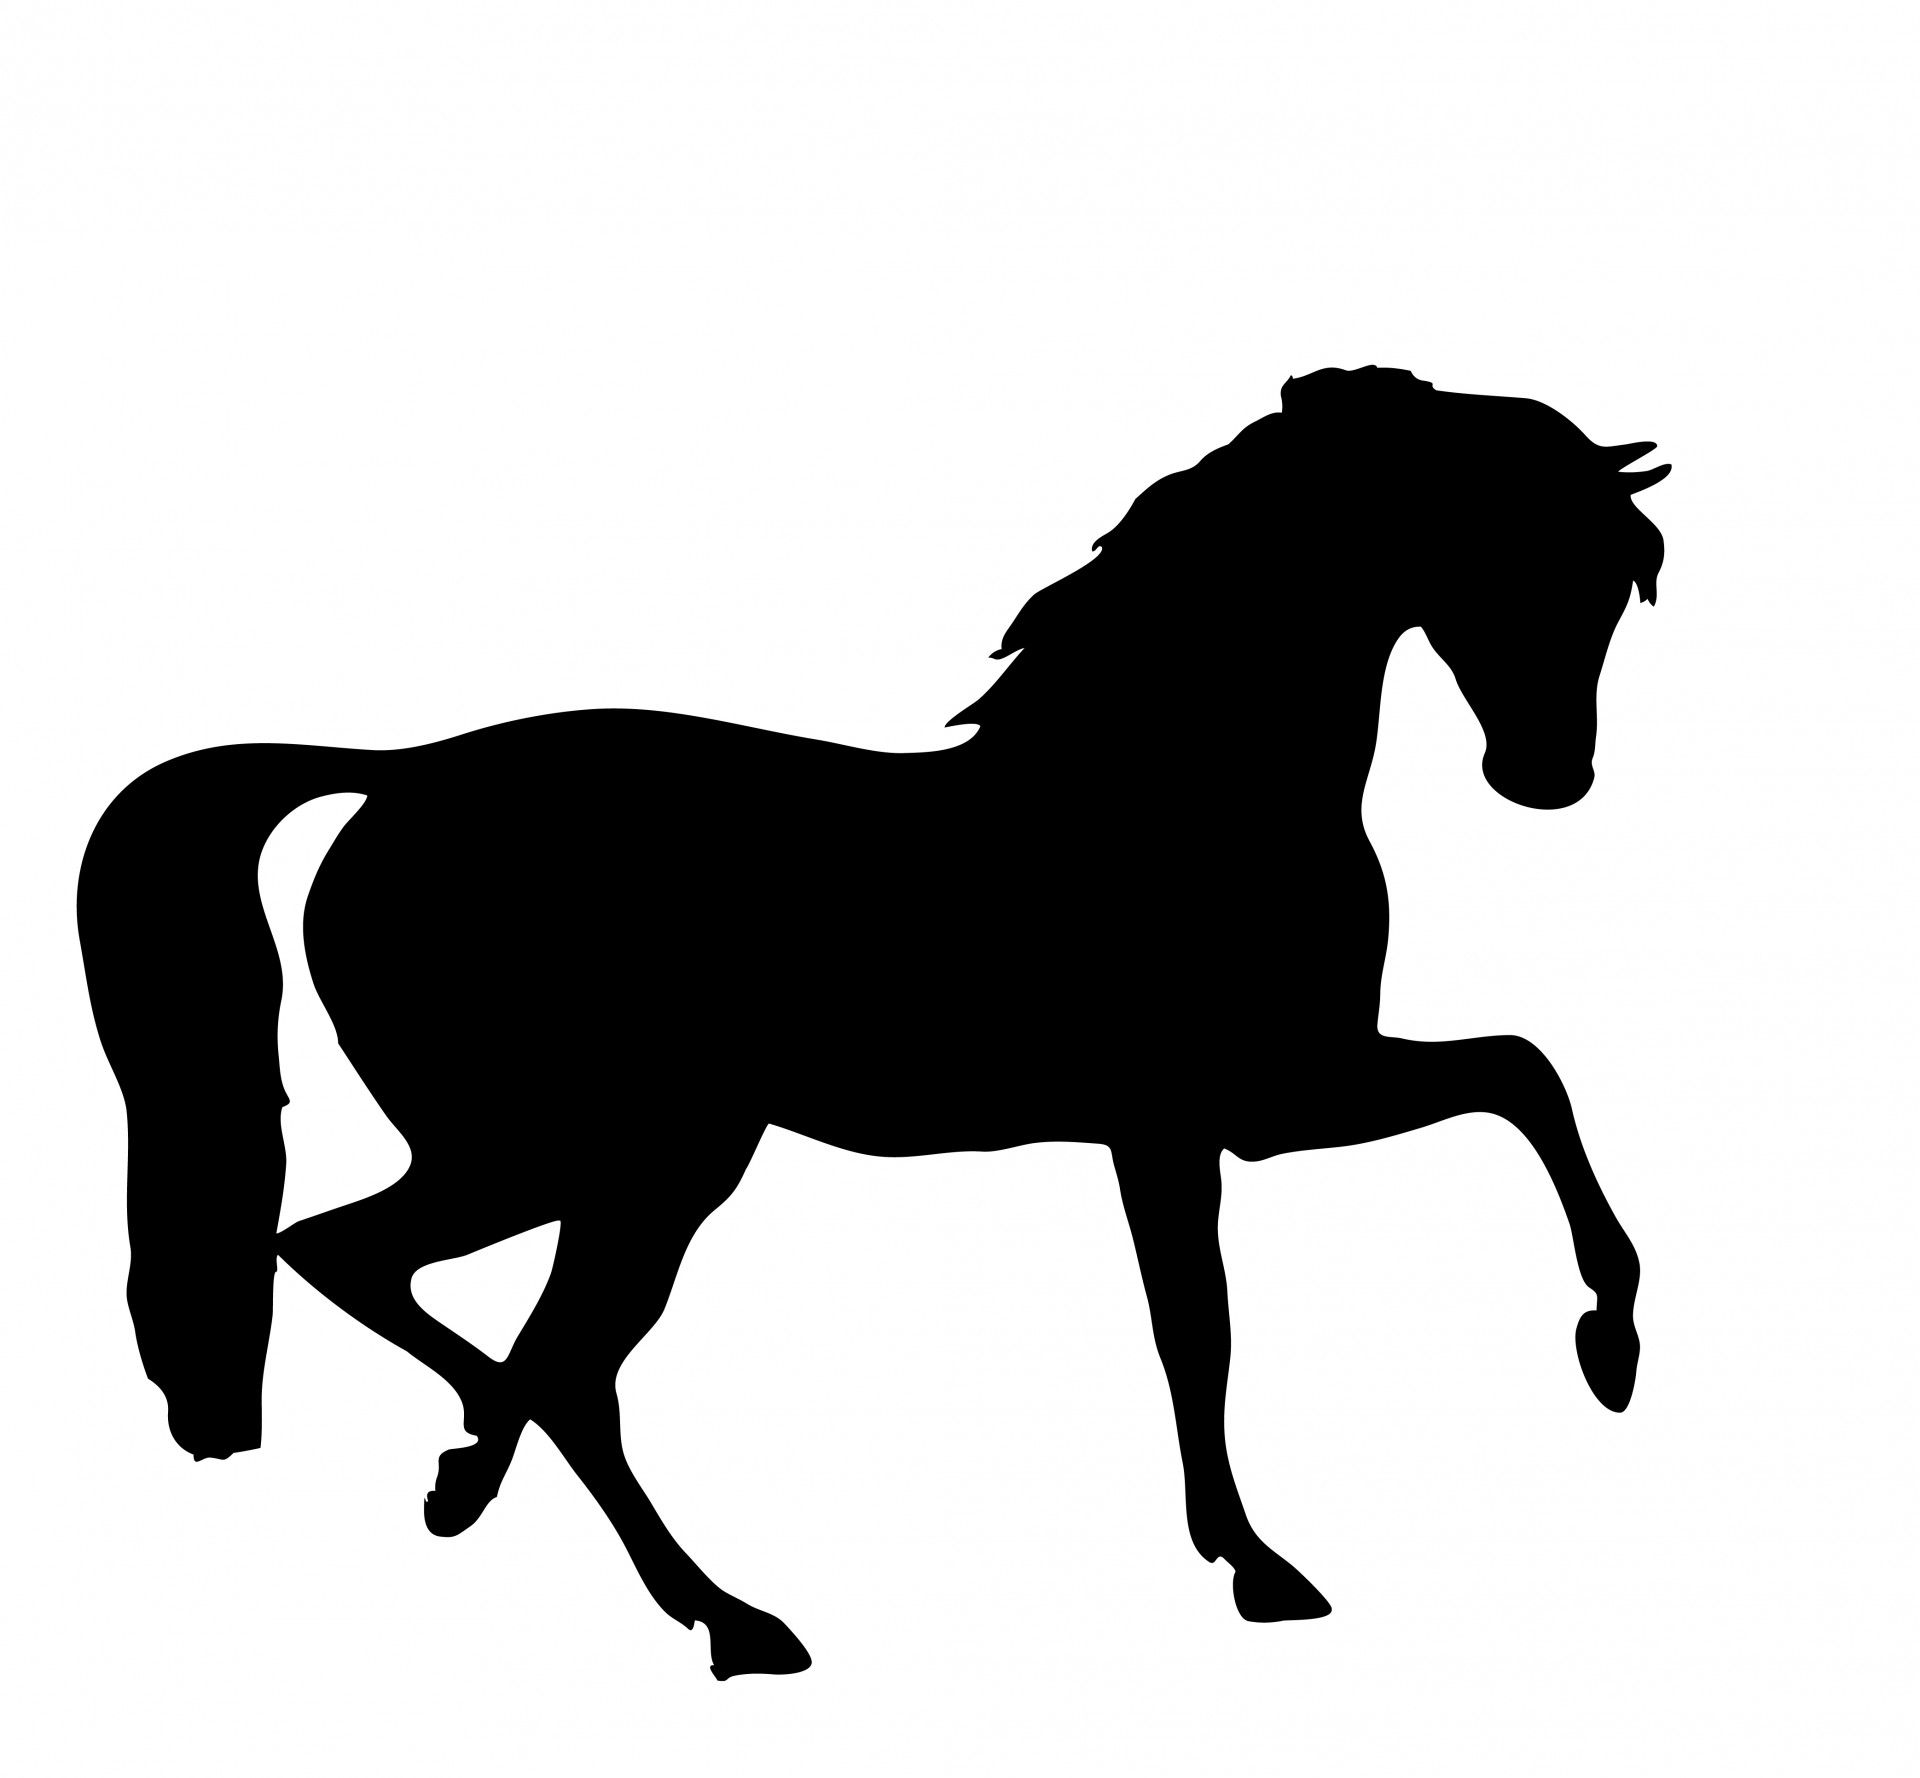 carousel horse silhouette clip art at getdrawings com free for rh getdrawings com clip art horses showmanship clip art horses and riders